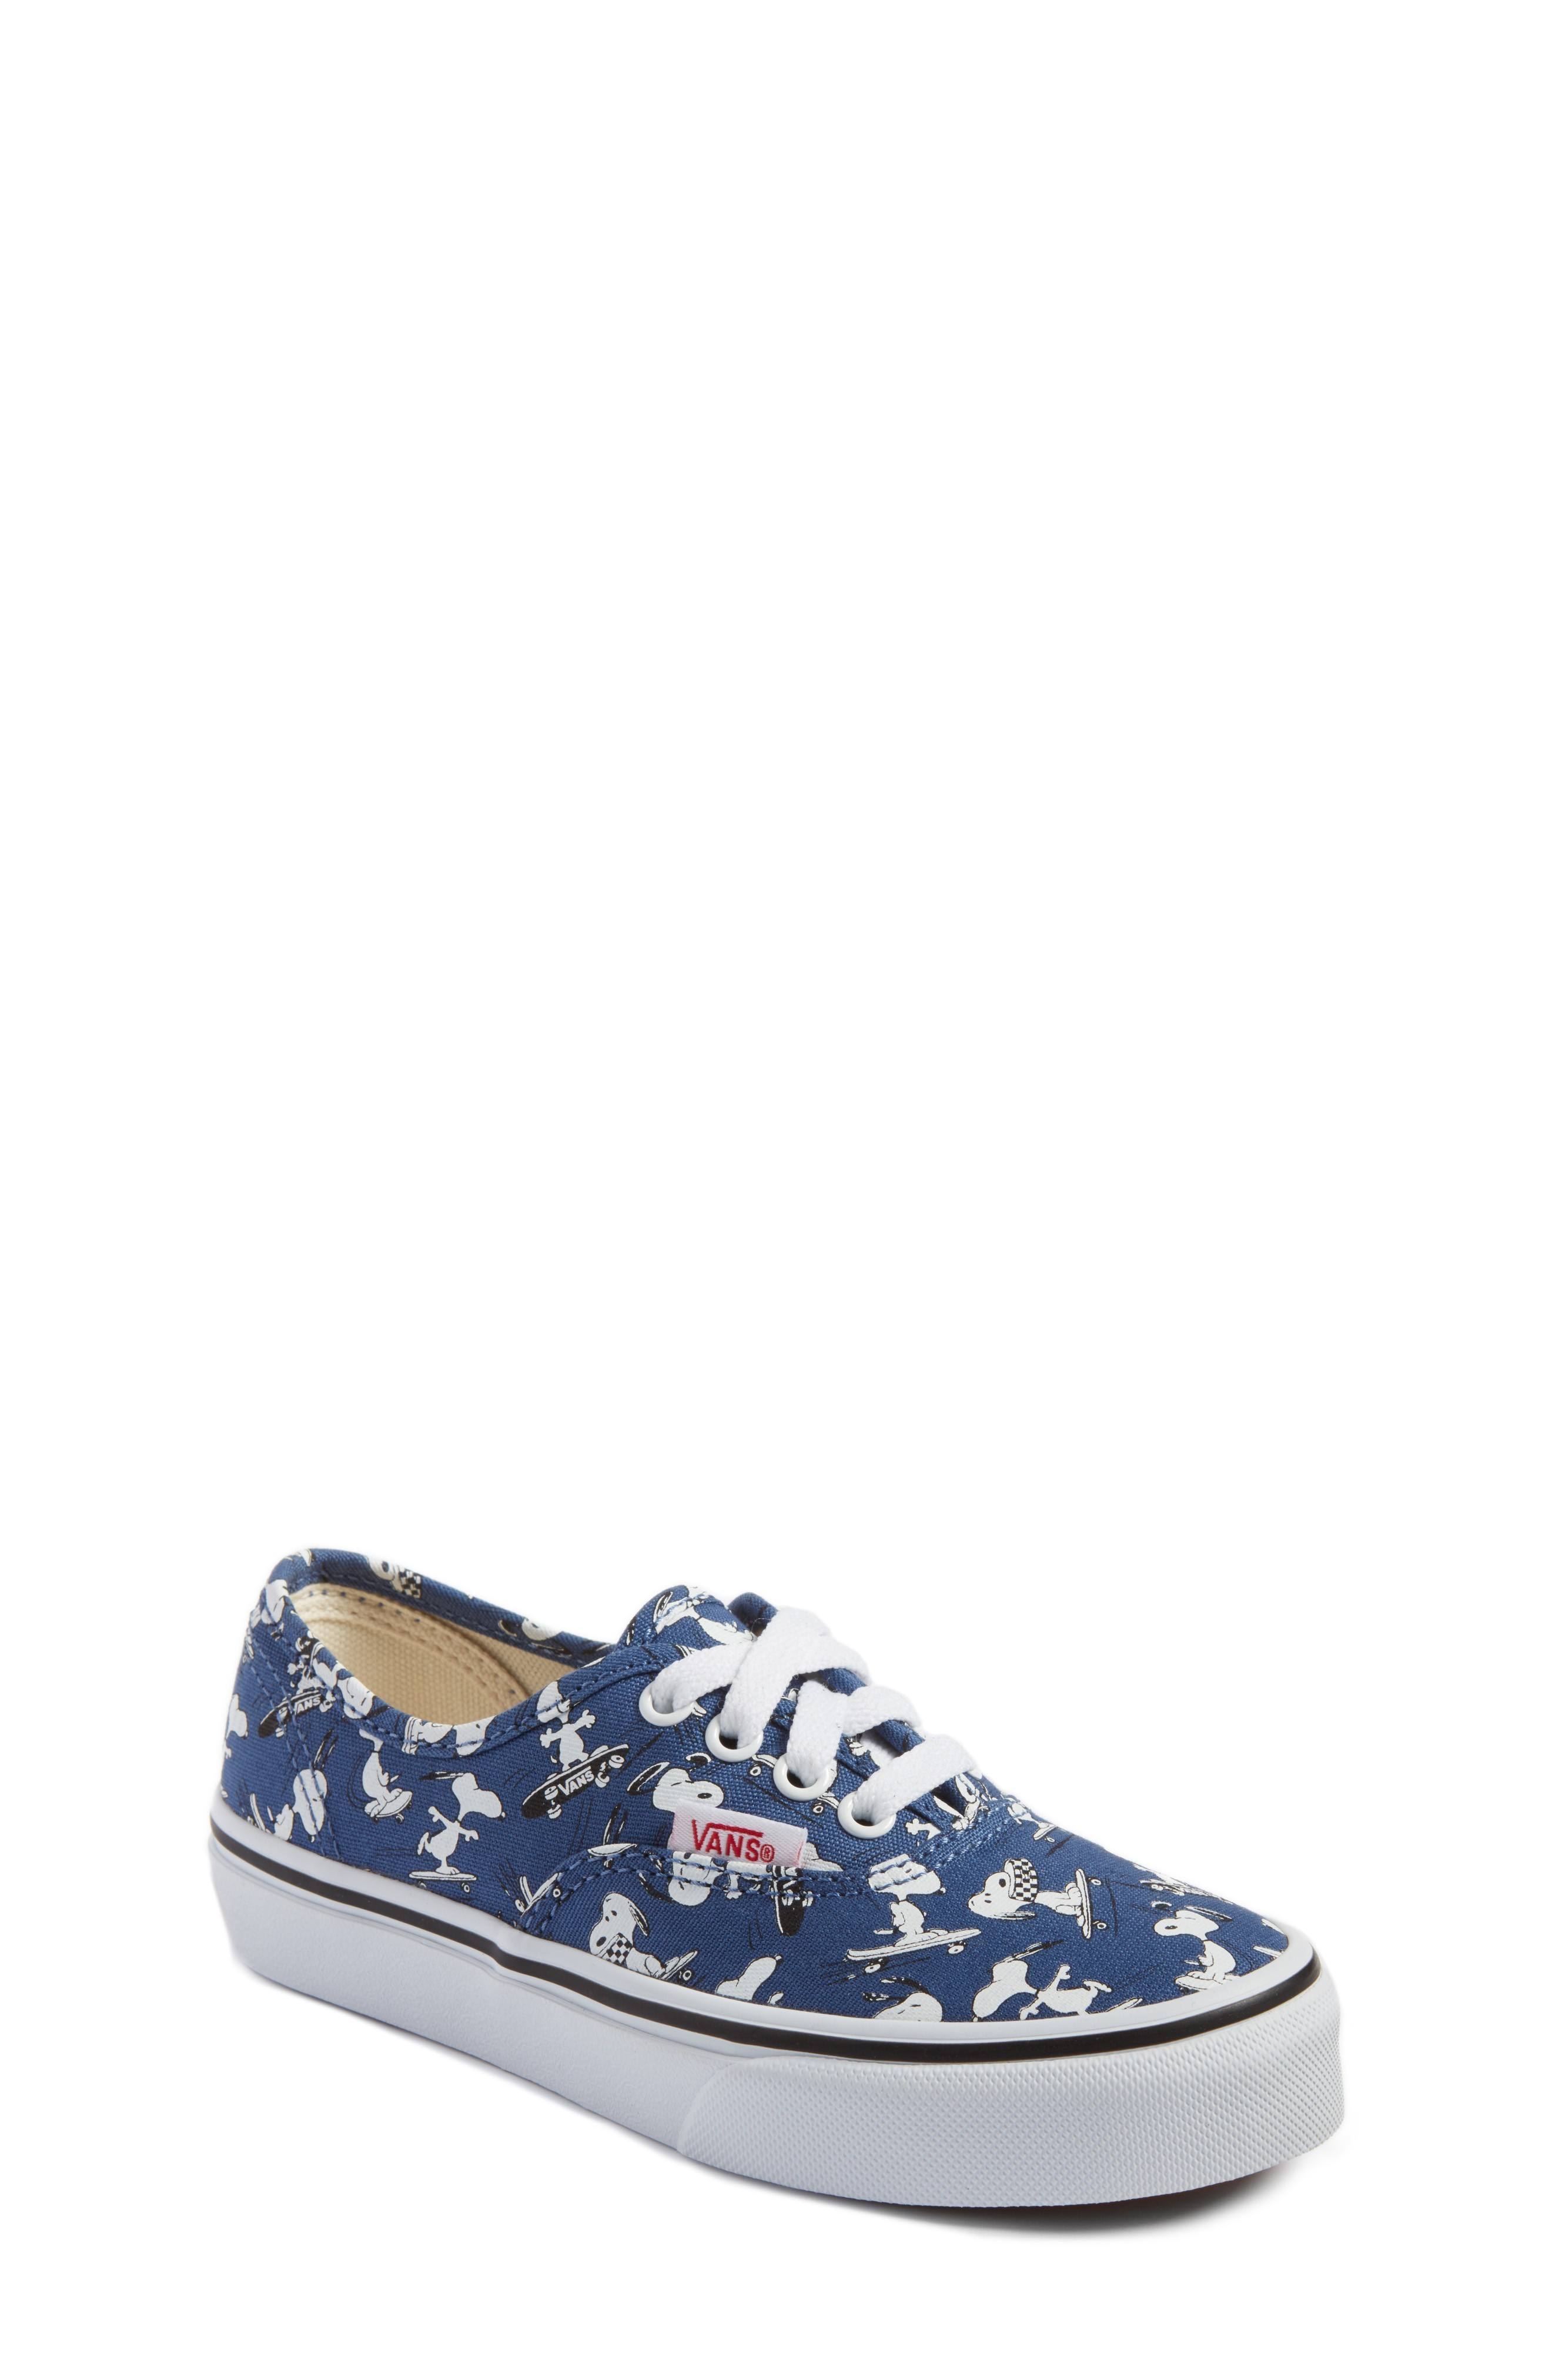 ★送・関込み★Vans x Peanuts Authentic Sneaker (T スニーカー